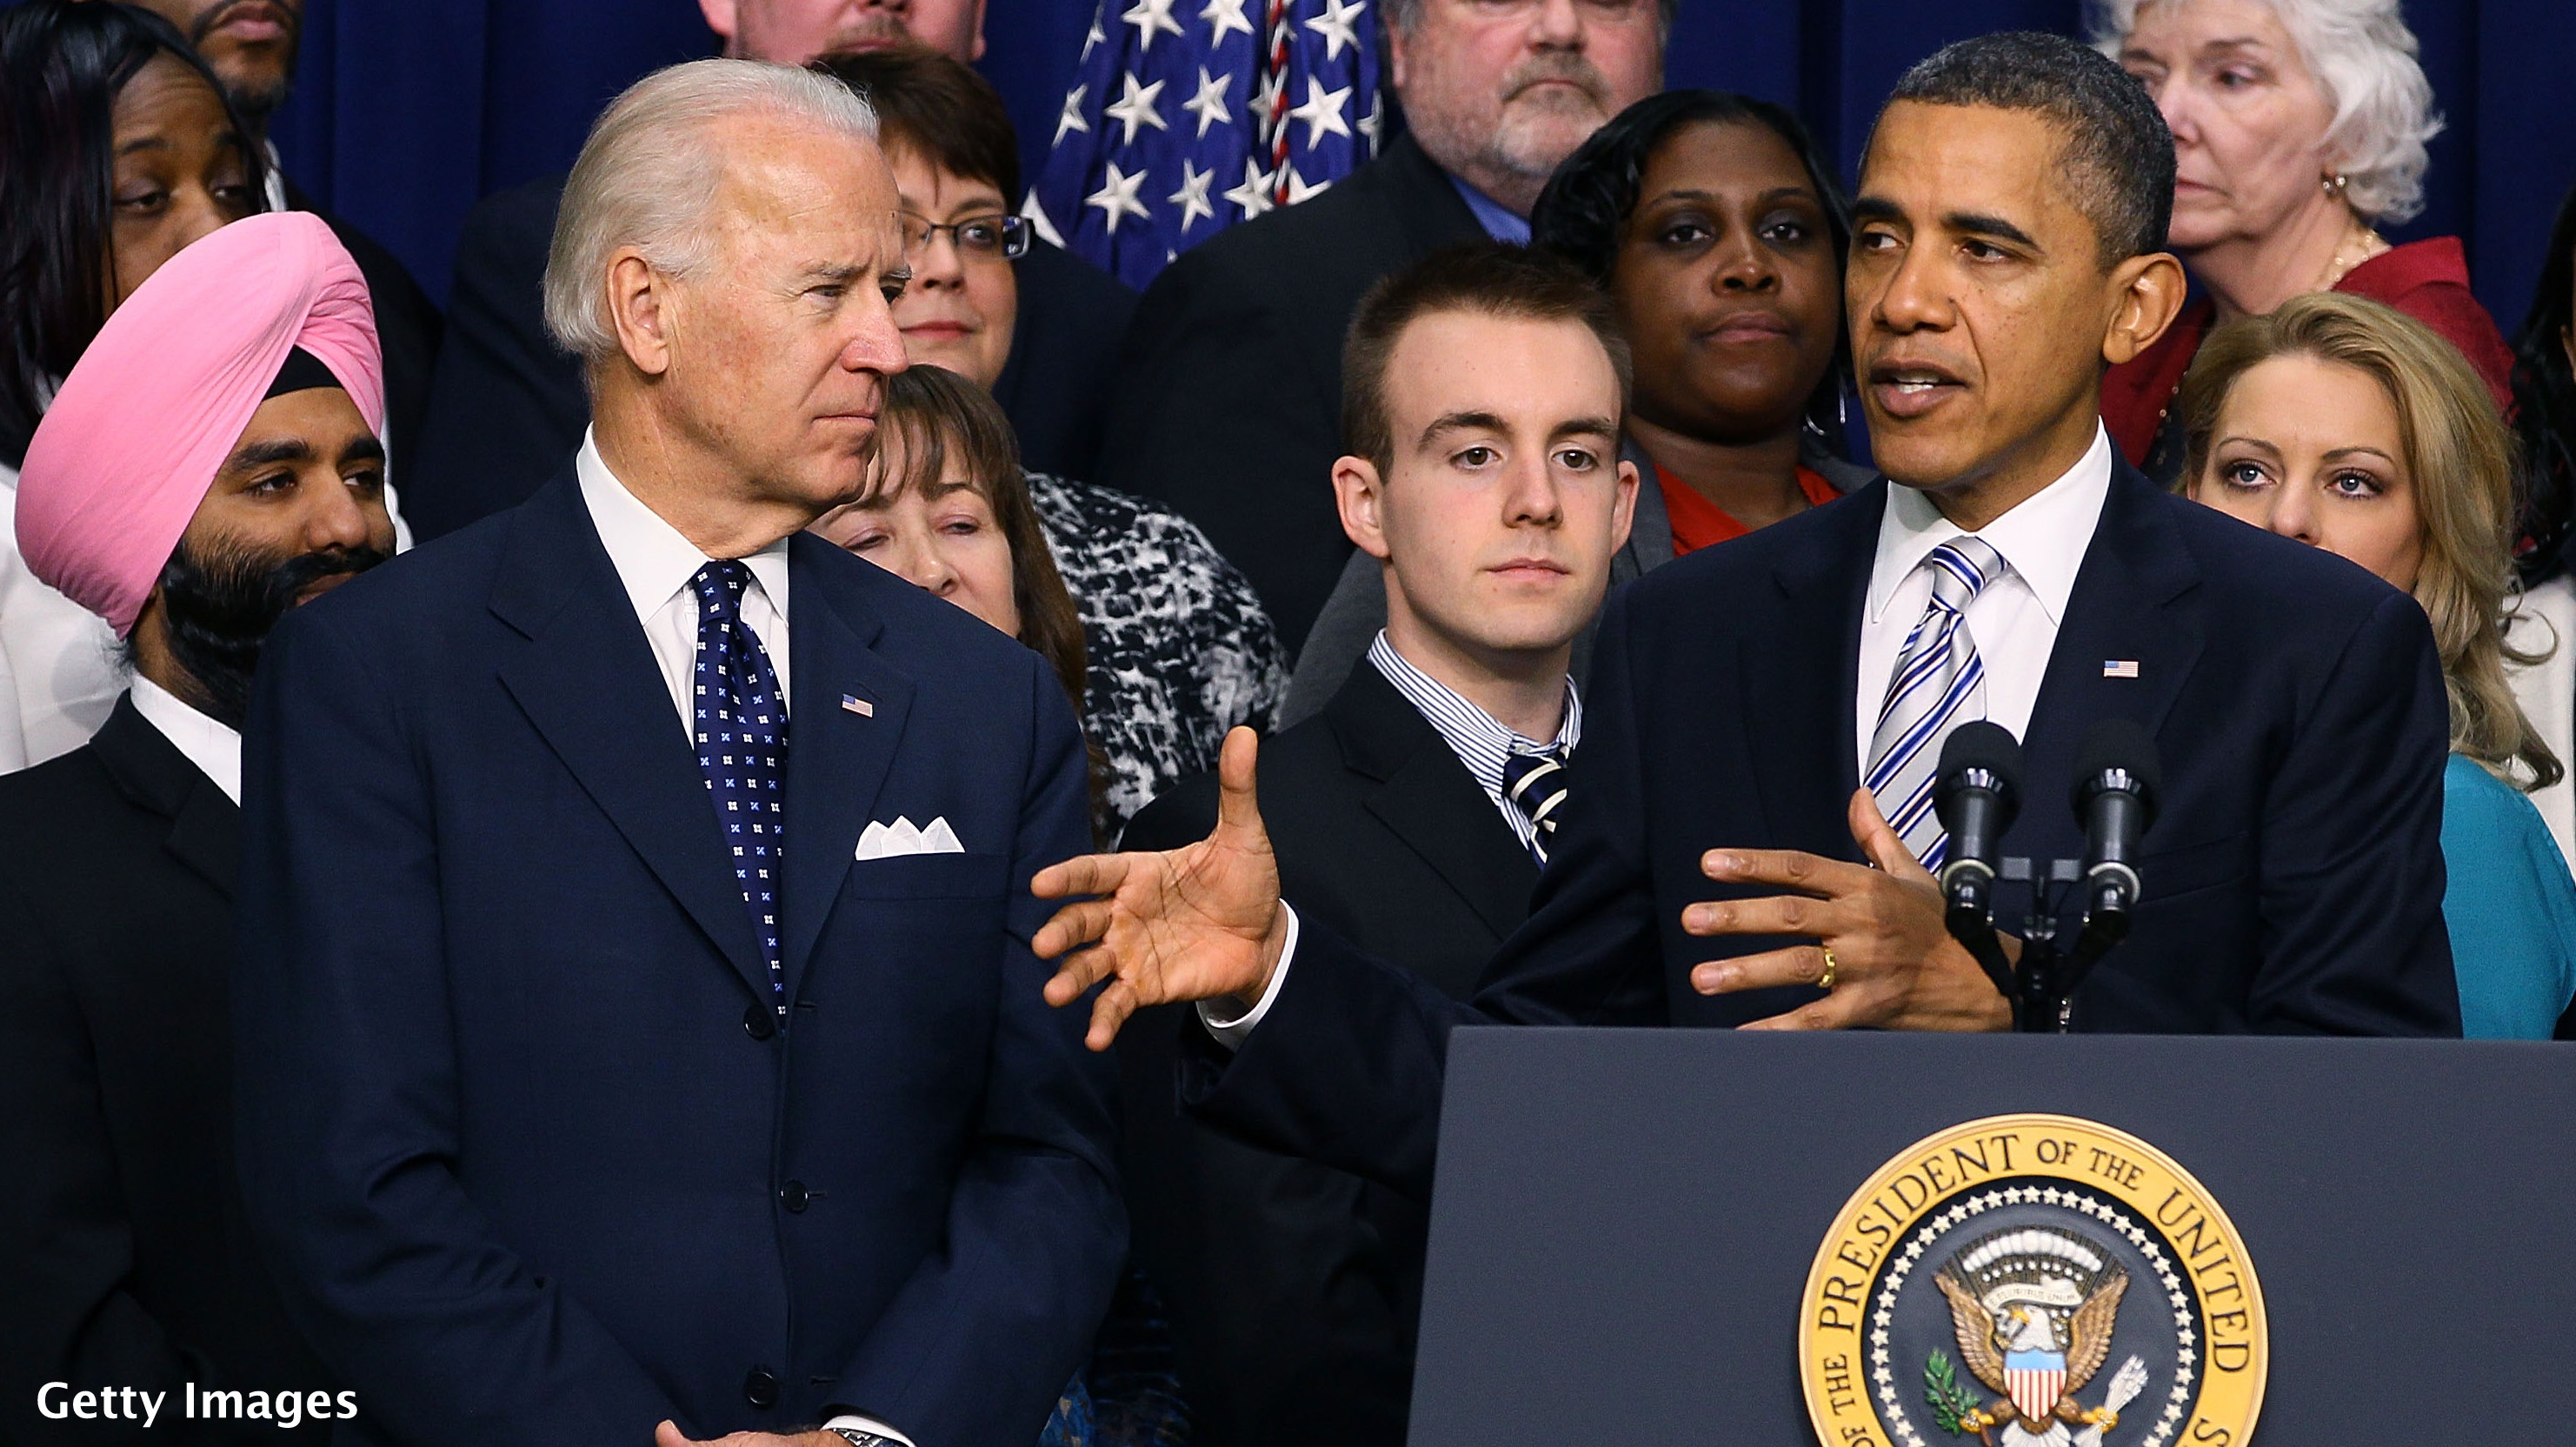 Obama and Biden hit swing states to push tax plan